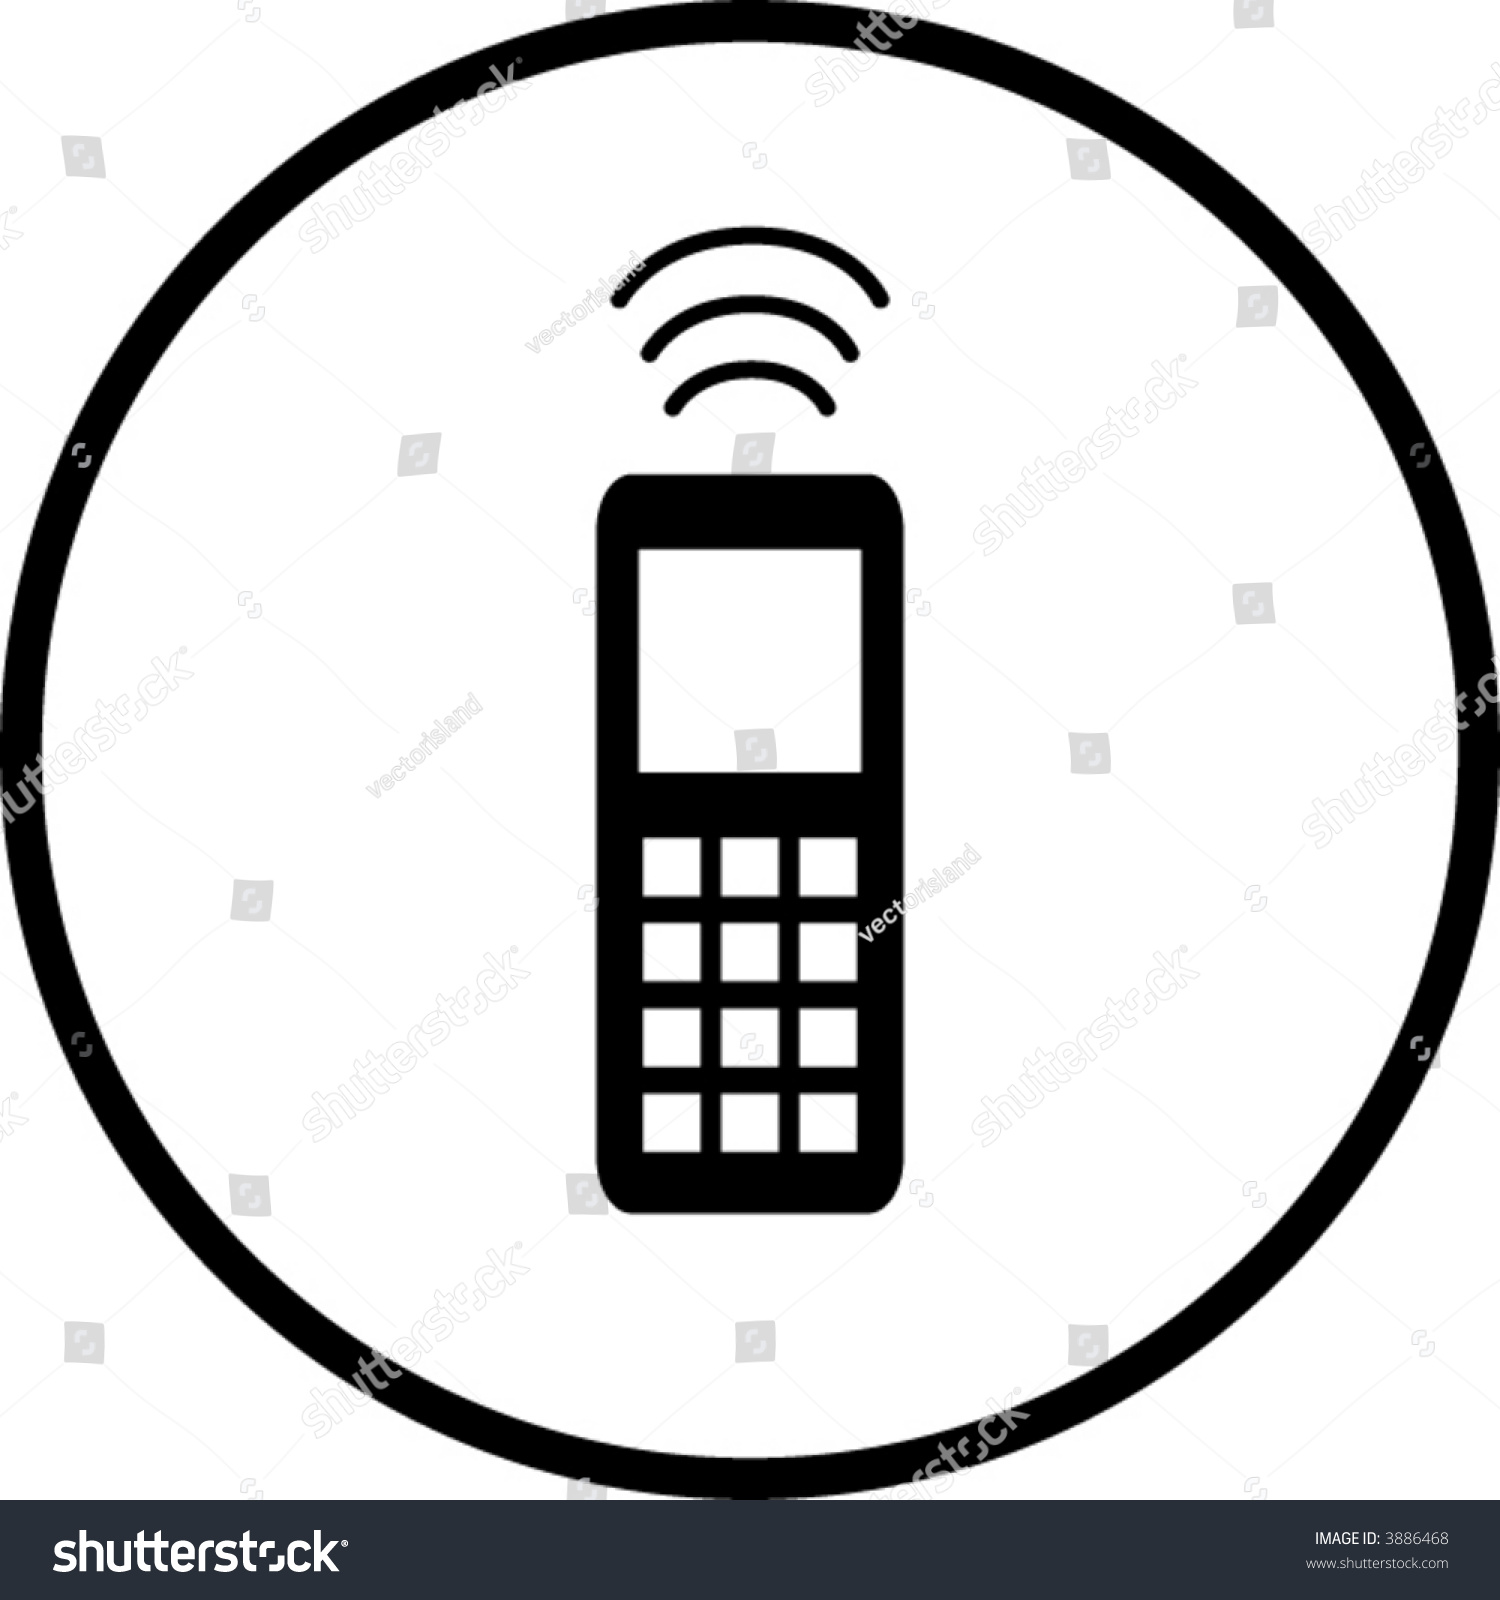 Cell phone symbol stock vector 3886468 shutterstock cell phone symbol biocorpaavc